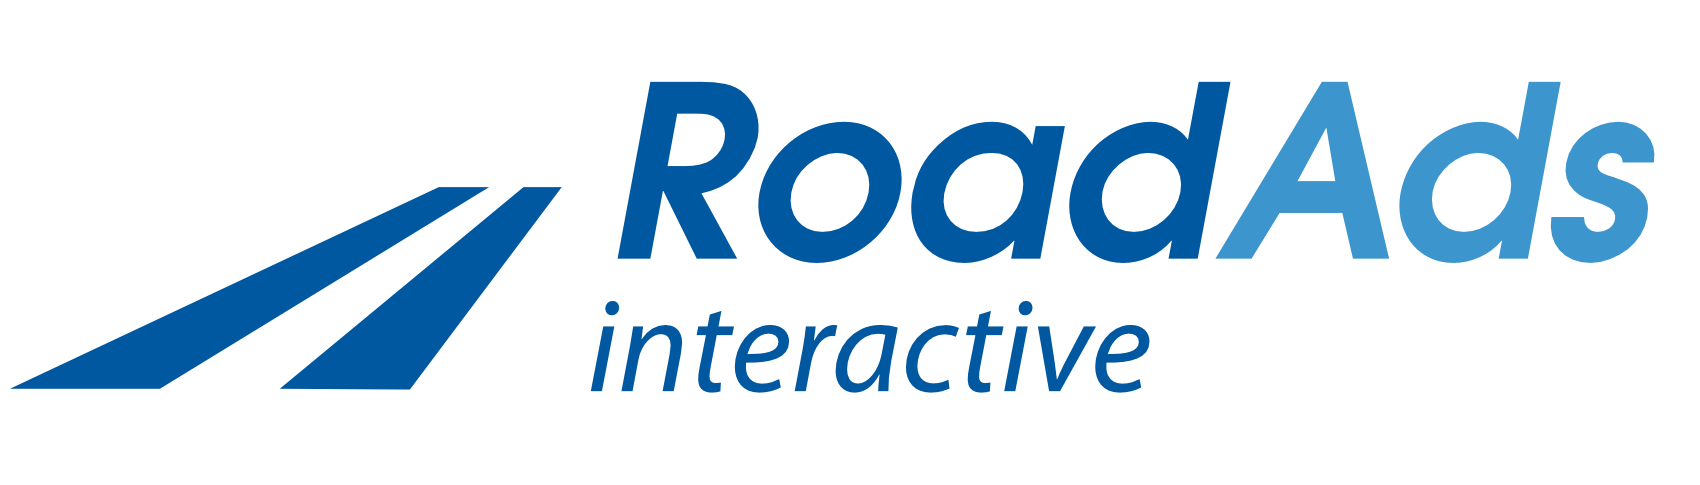 RoadAds interactive